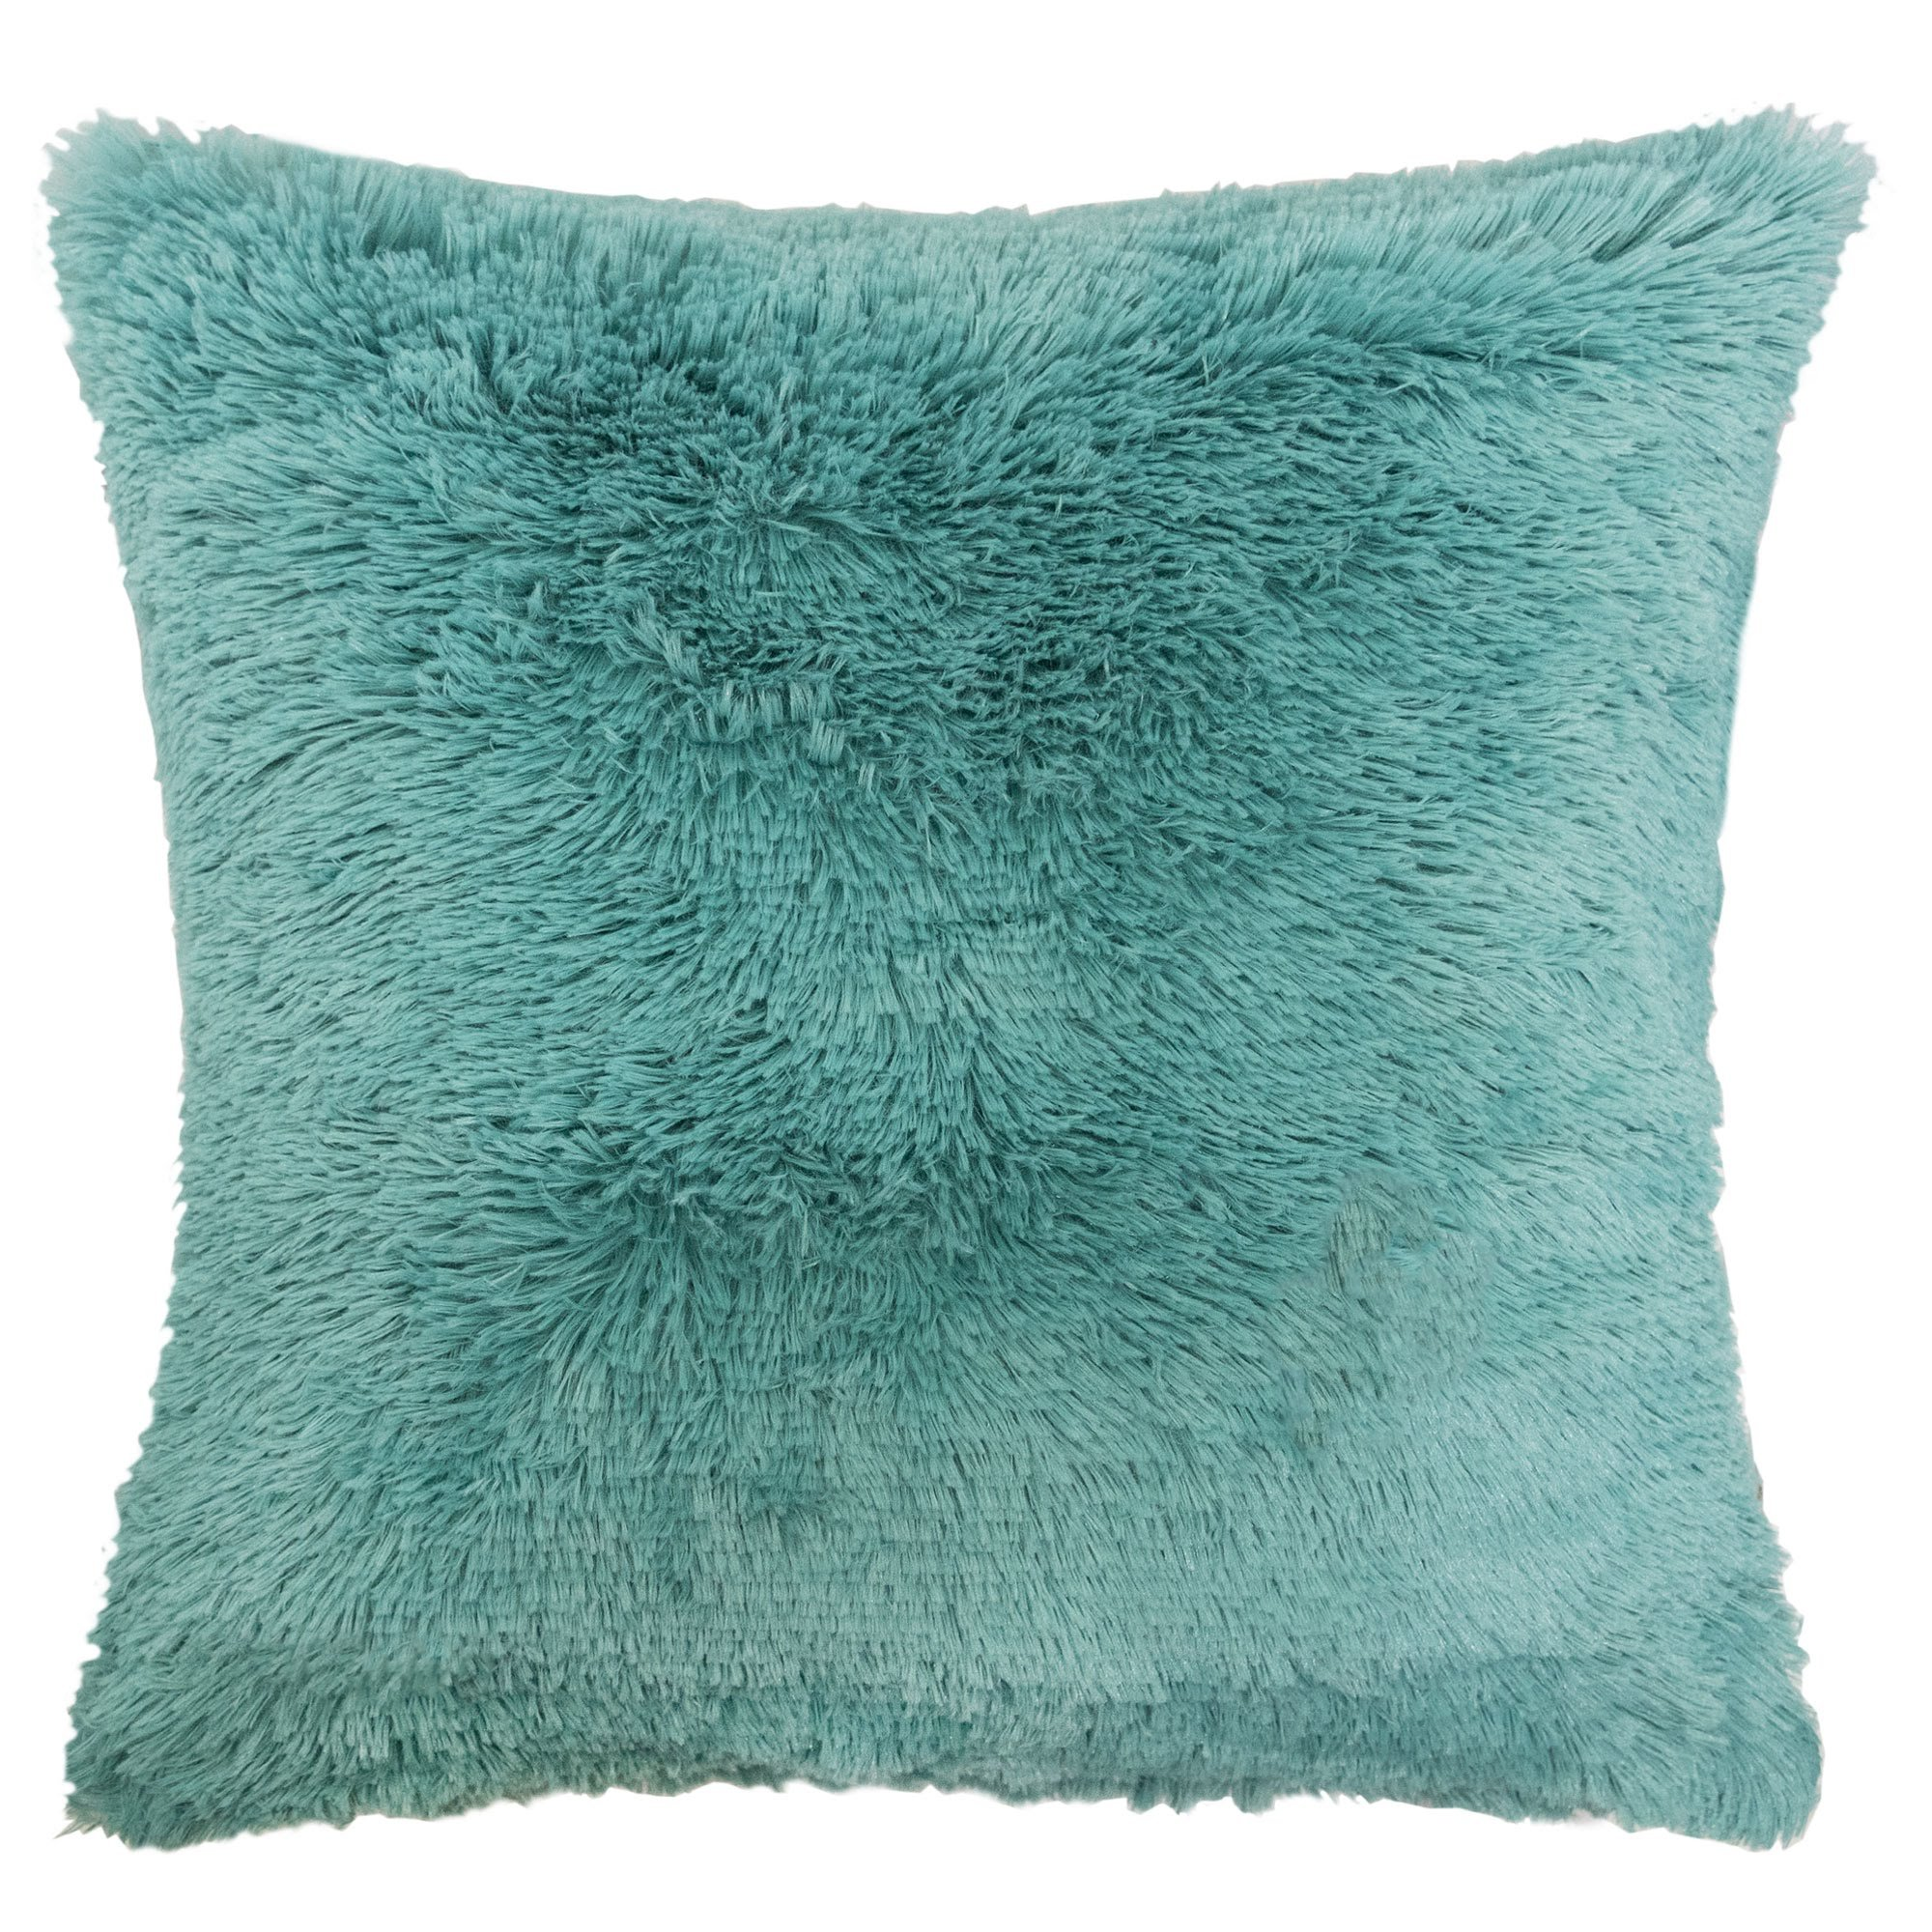 Homey Cozy Faux Fur and Flannel Decorative  Pillow, Super Soft Shaggy Fleece Fuzzy Lightweight, Feather Filled, Spa , Synthetic